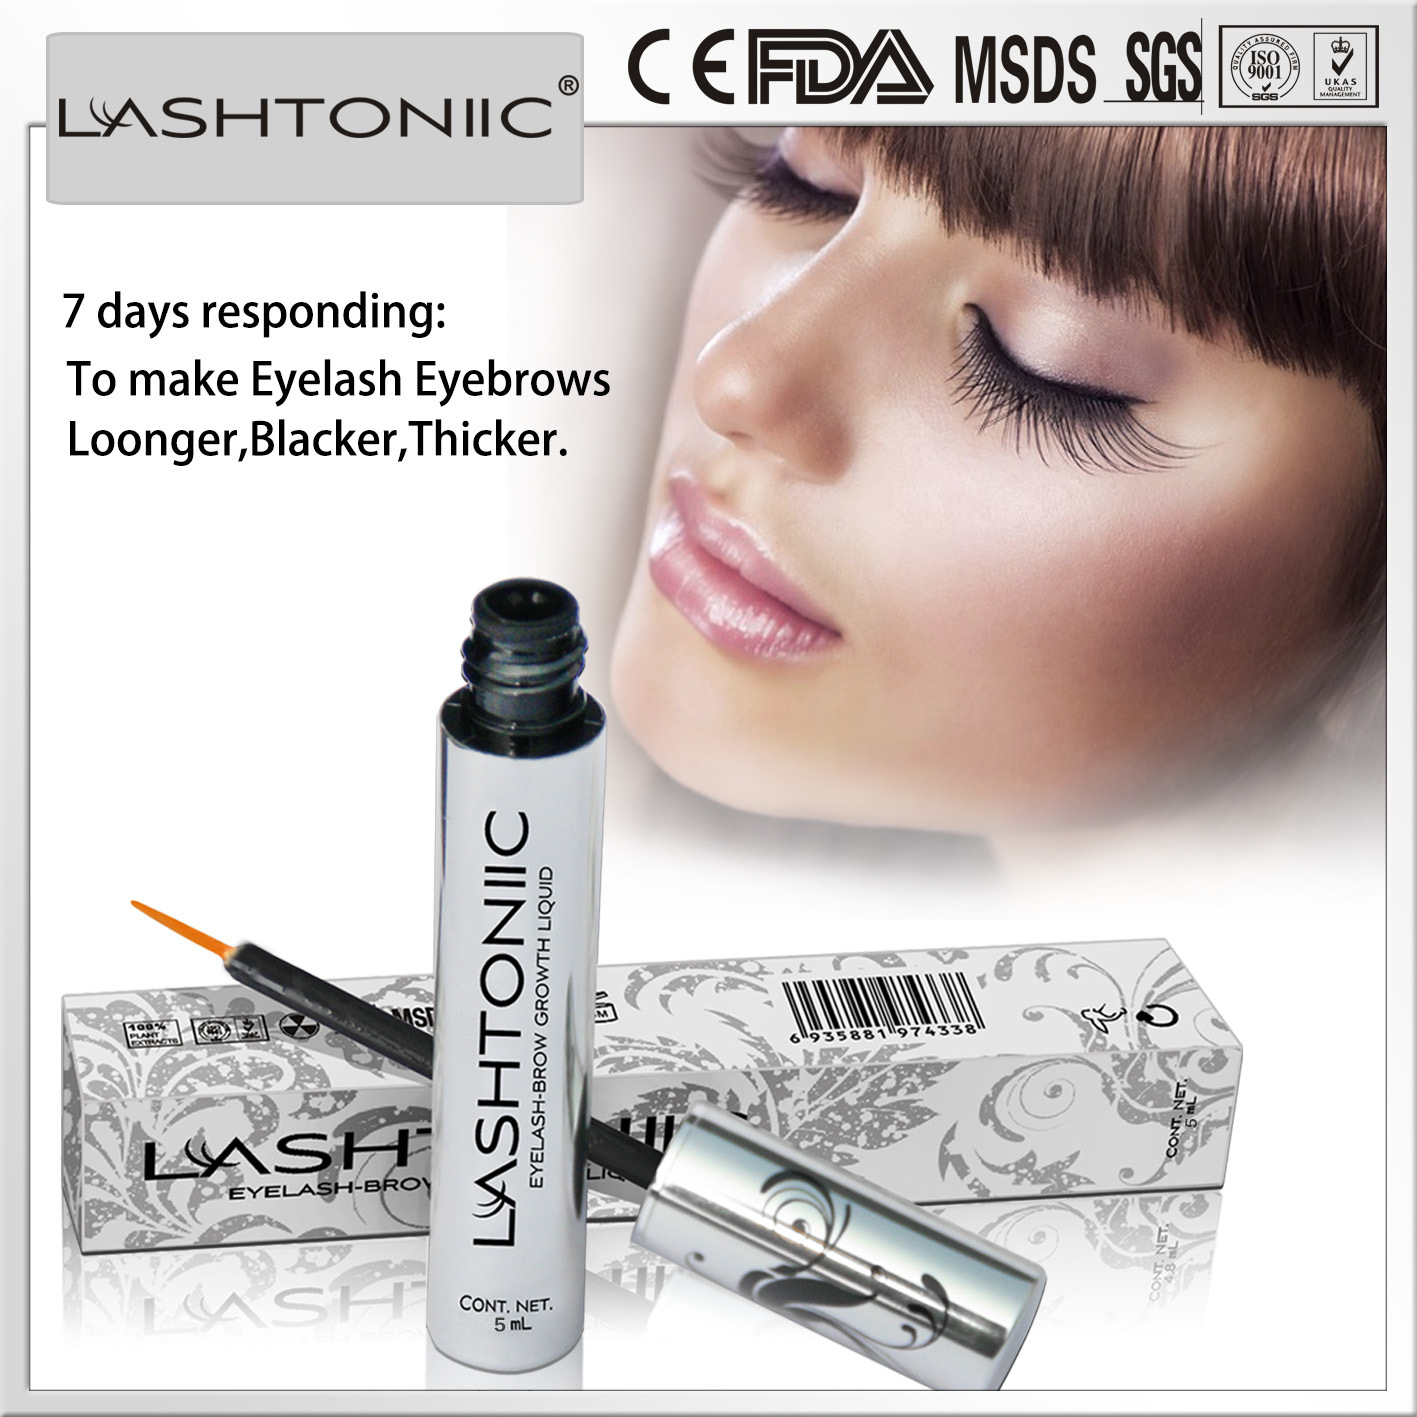 China Lashes Grow Product Most Effective Lashtoniic Eyelash Eyebrow